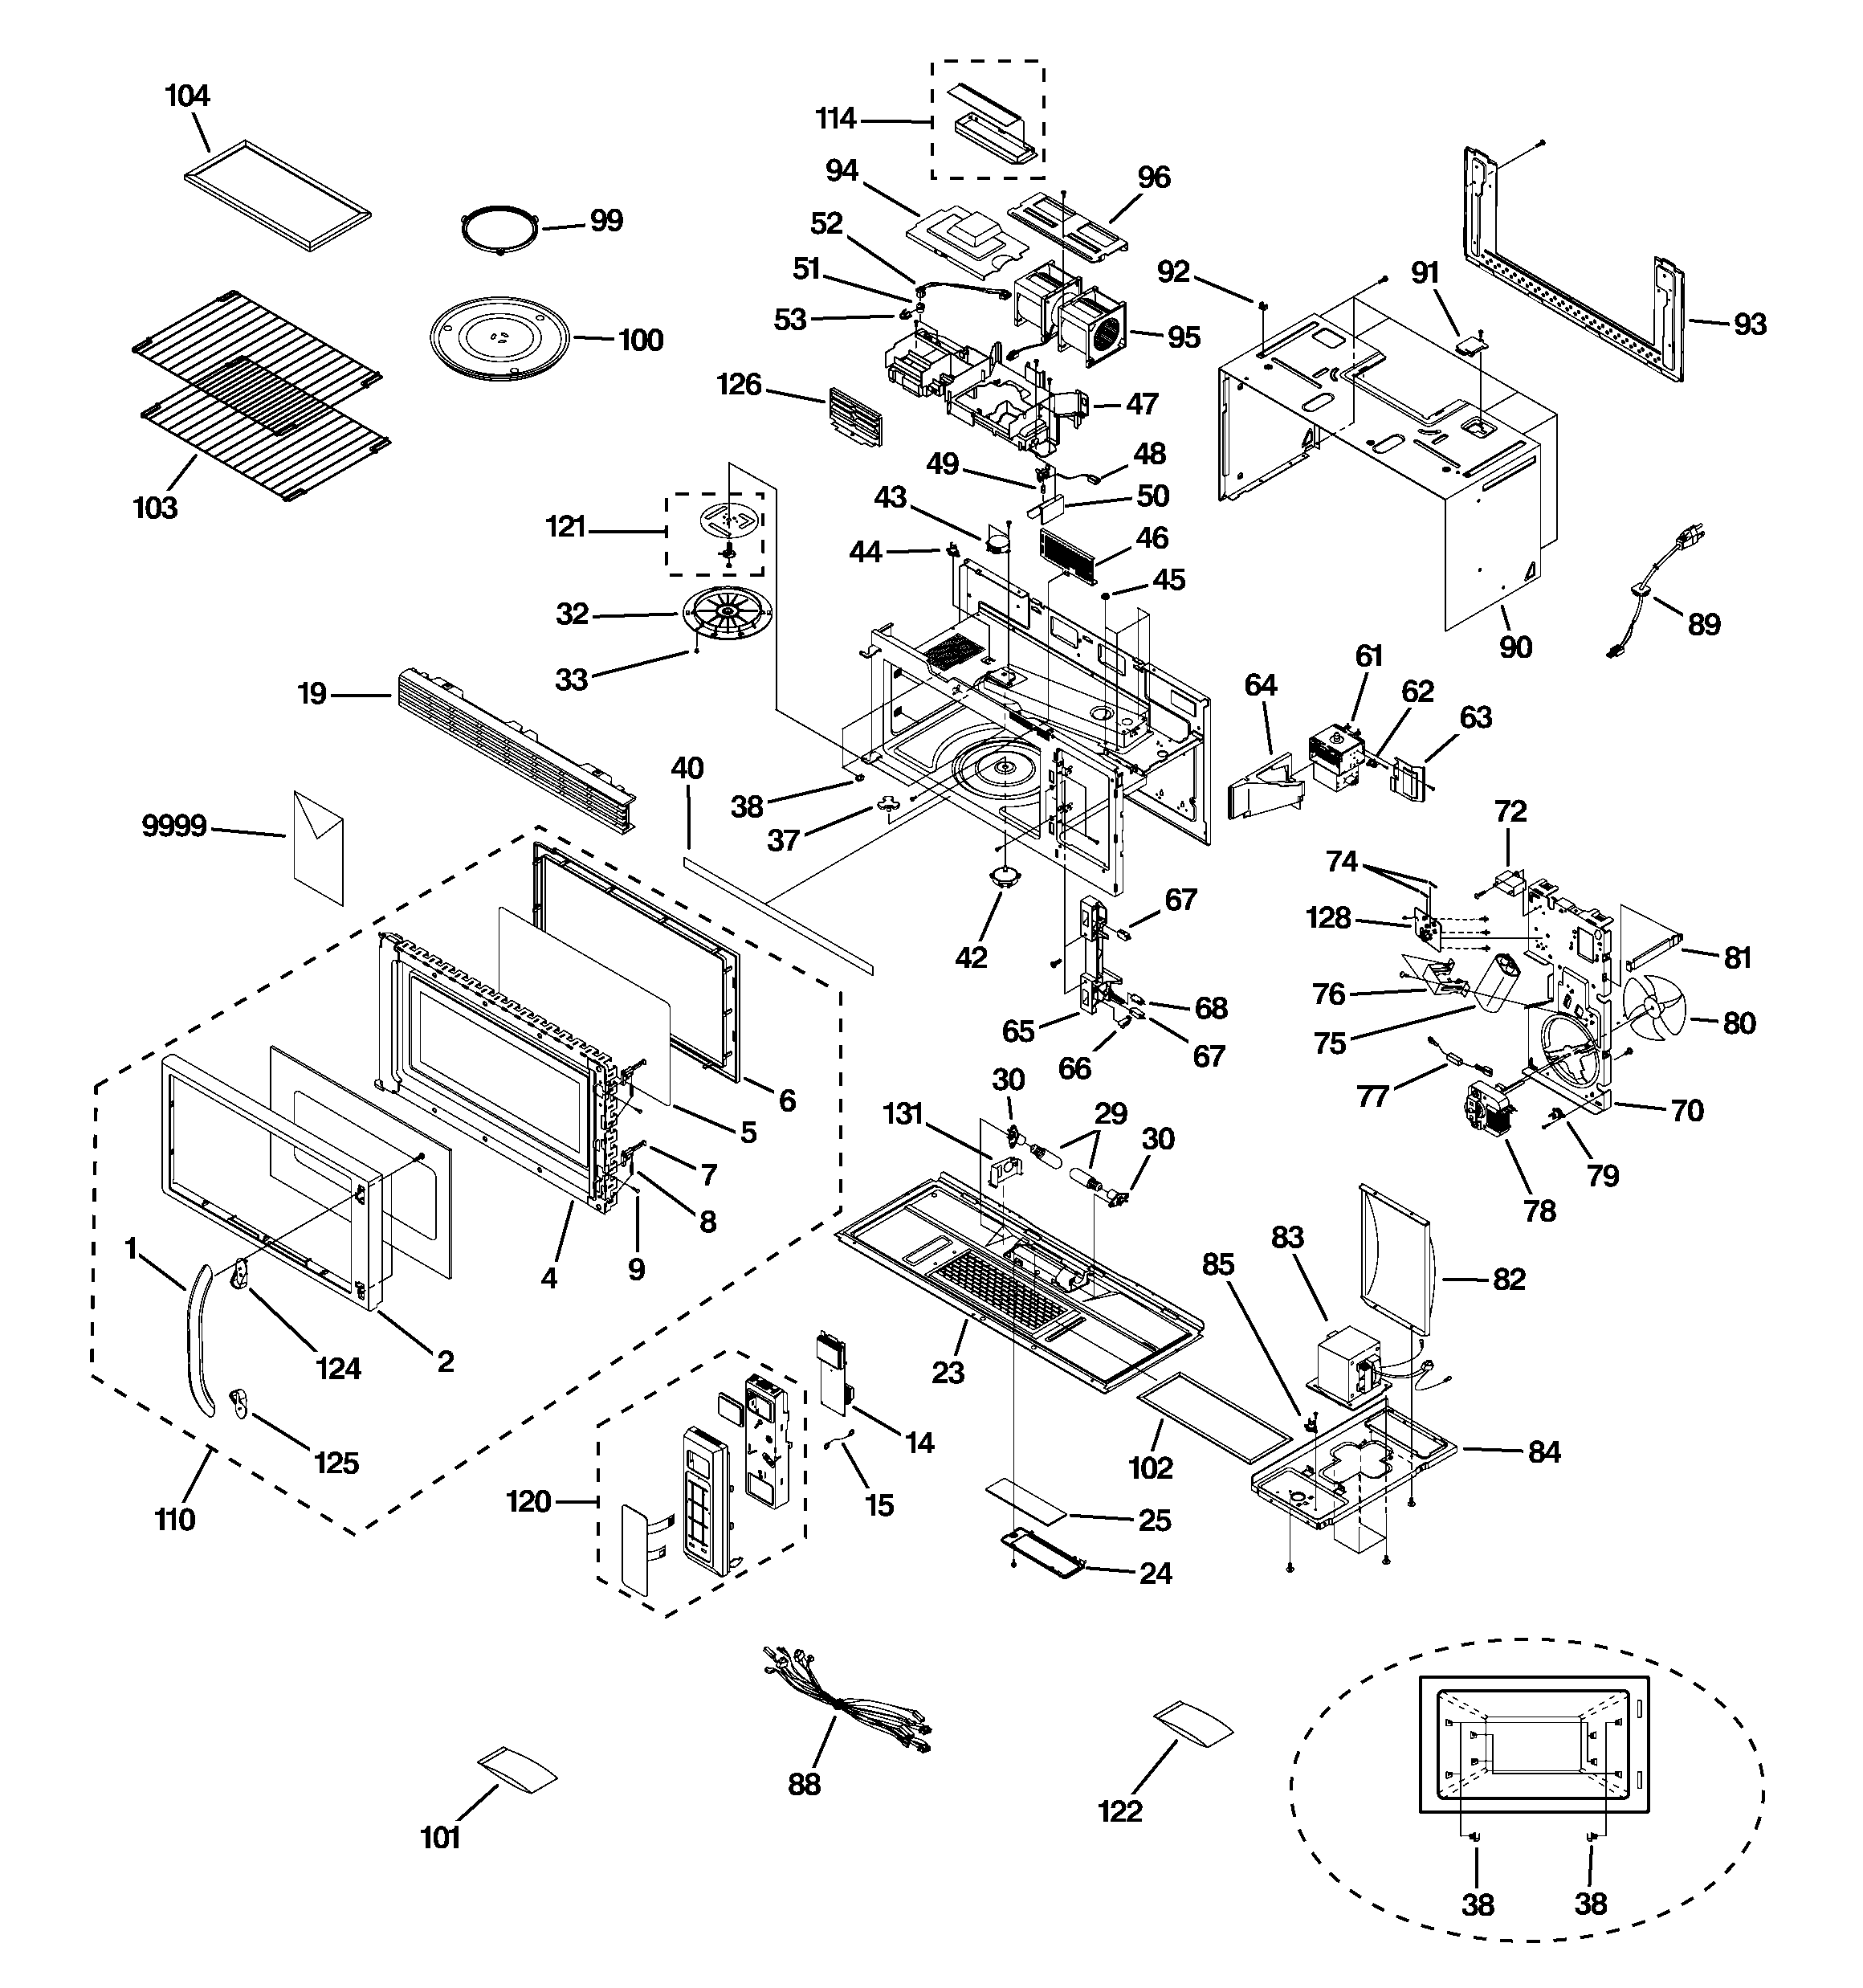 G0604228 00001?resize\\\\\\\\\\\\\\\\\\\\\\\\\\\\\\\=665%2C709 wiring diagram for range hood fan nautilus range hood wiring  at readyjetset.co